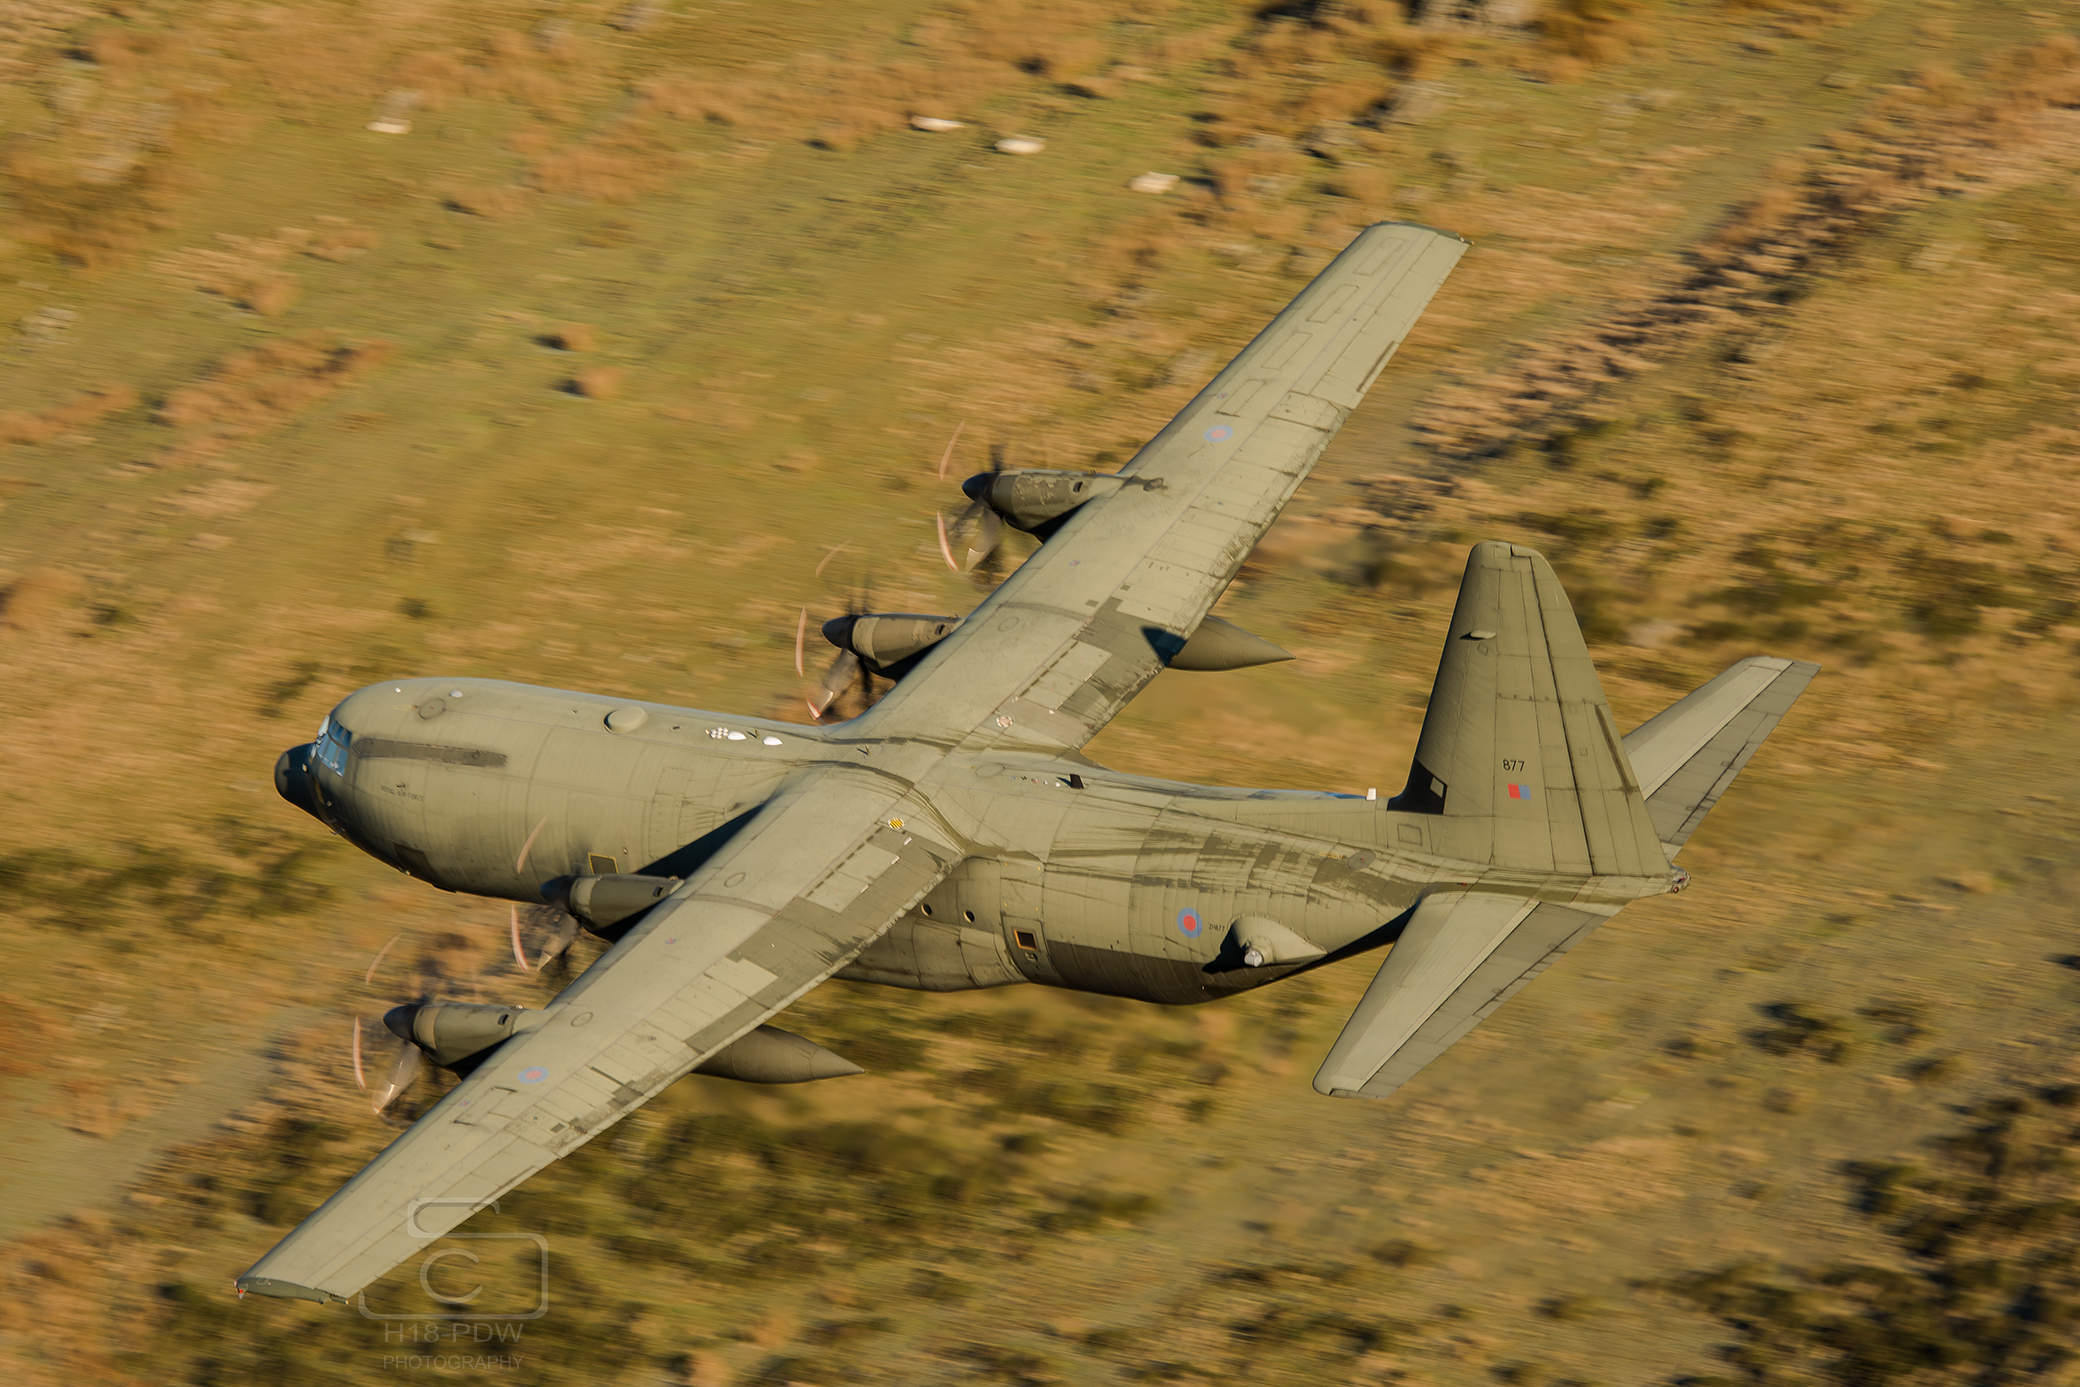 Hercules In The Mach Loop